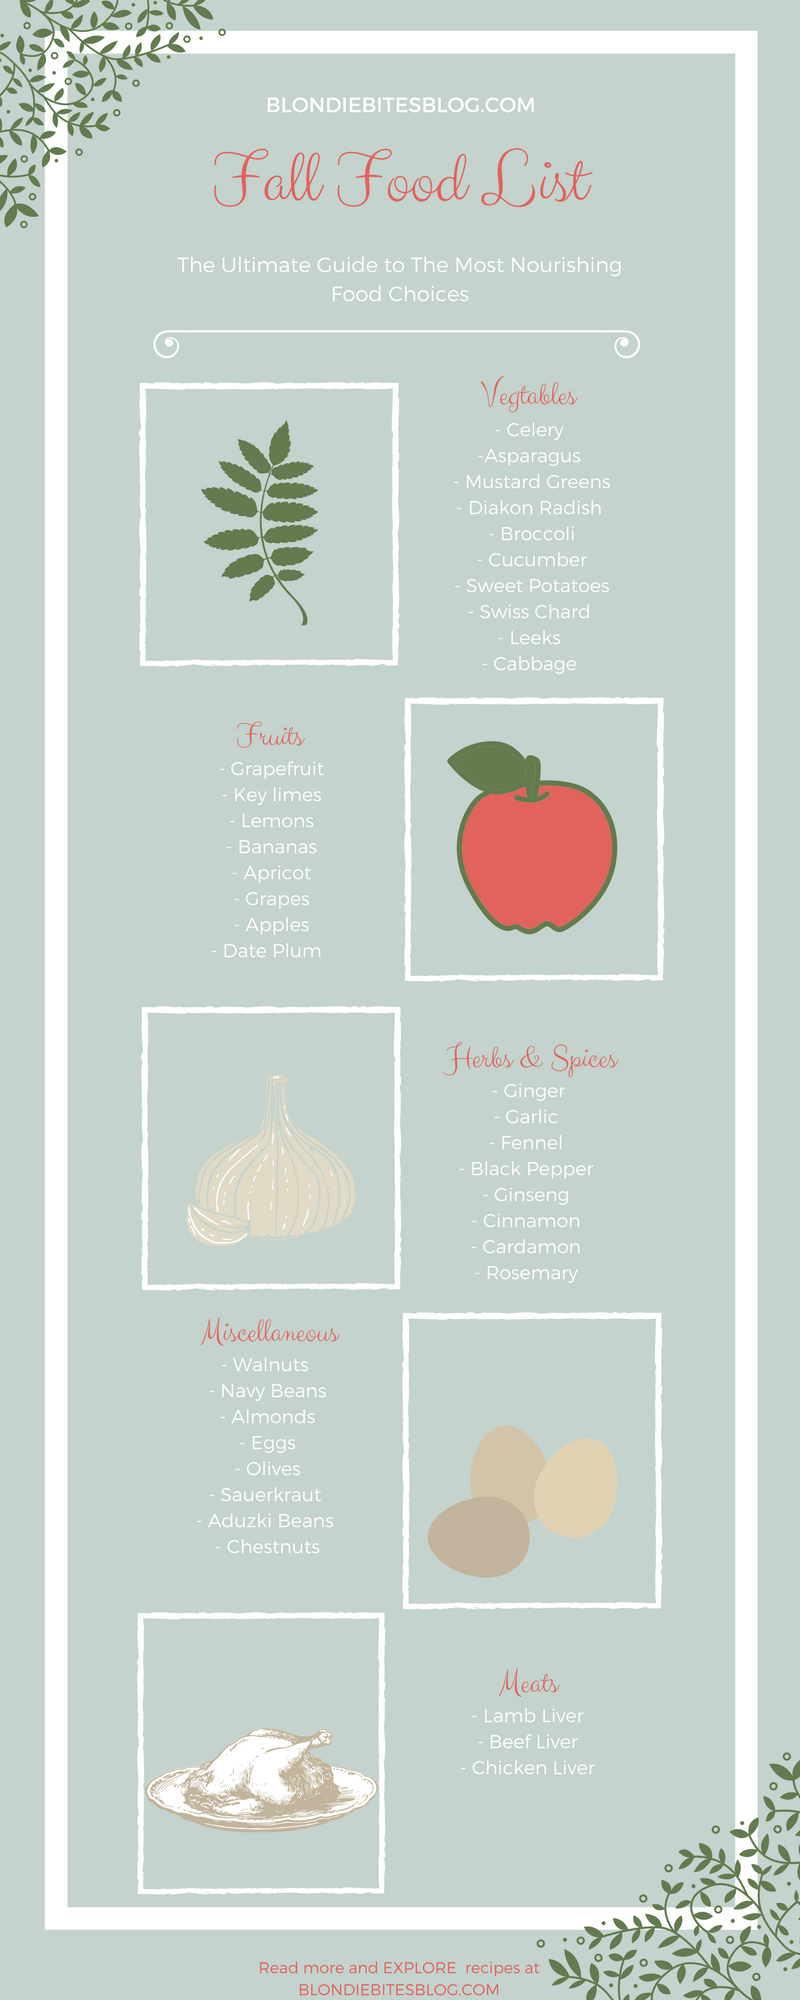 Fall Food List